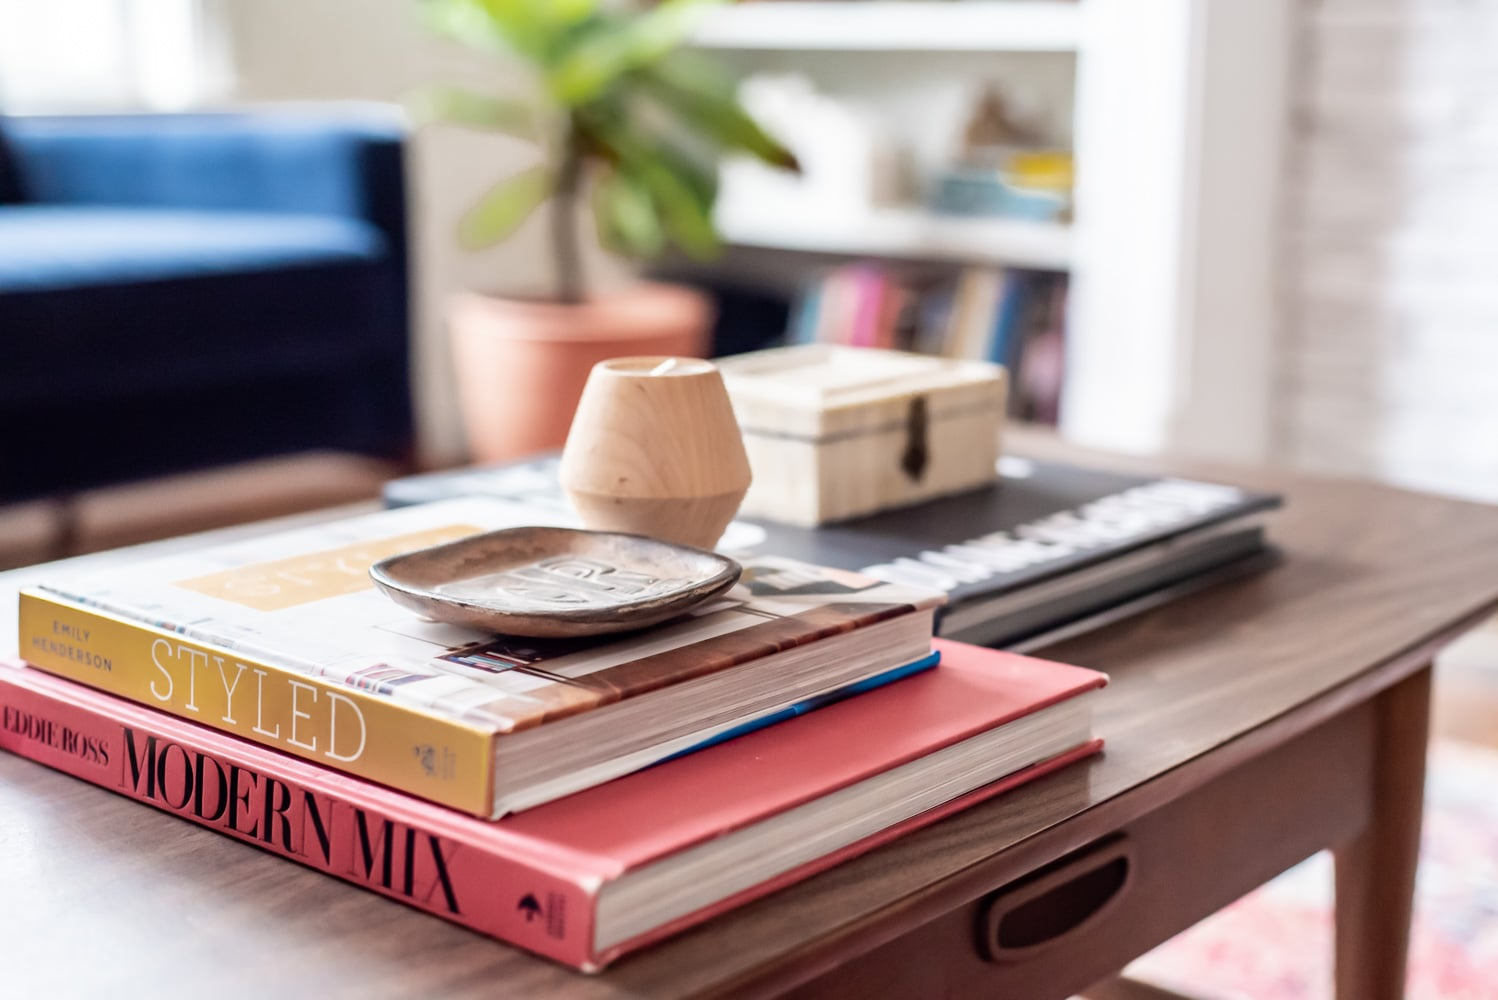 stacked books on mid century coffee table